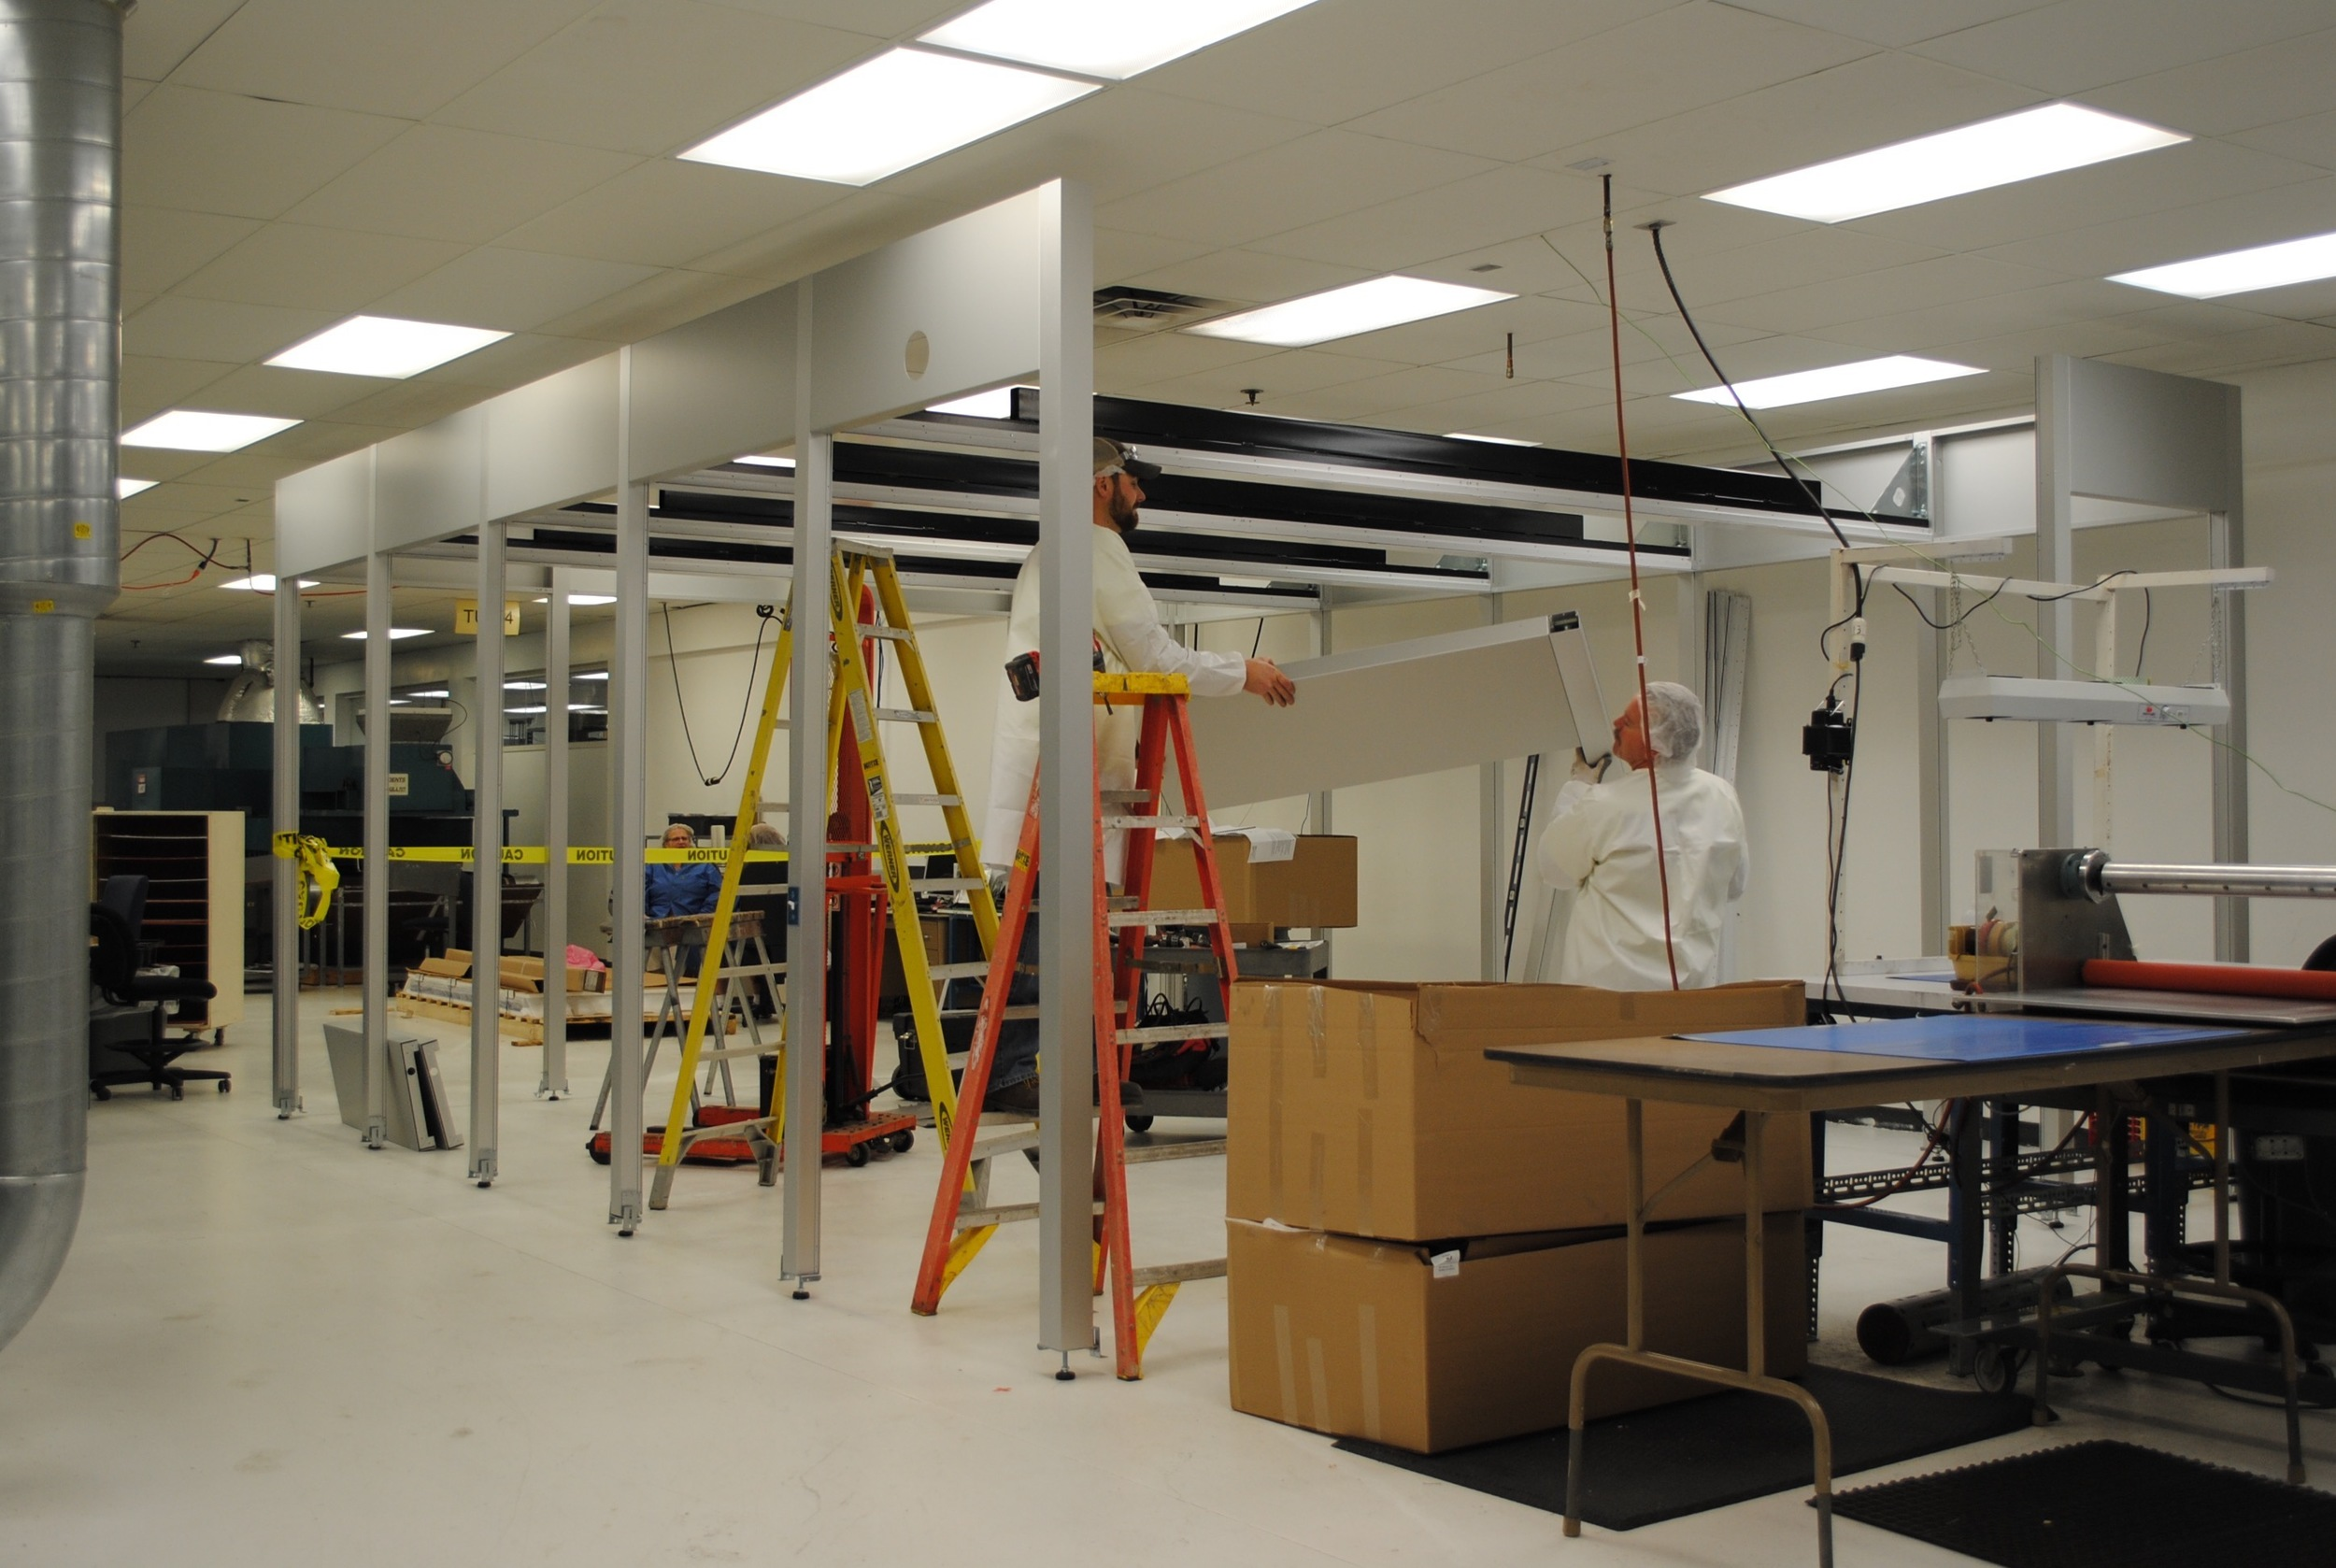 Building the Clean Room